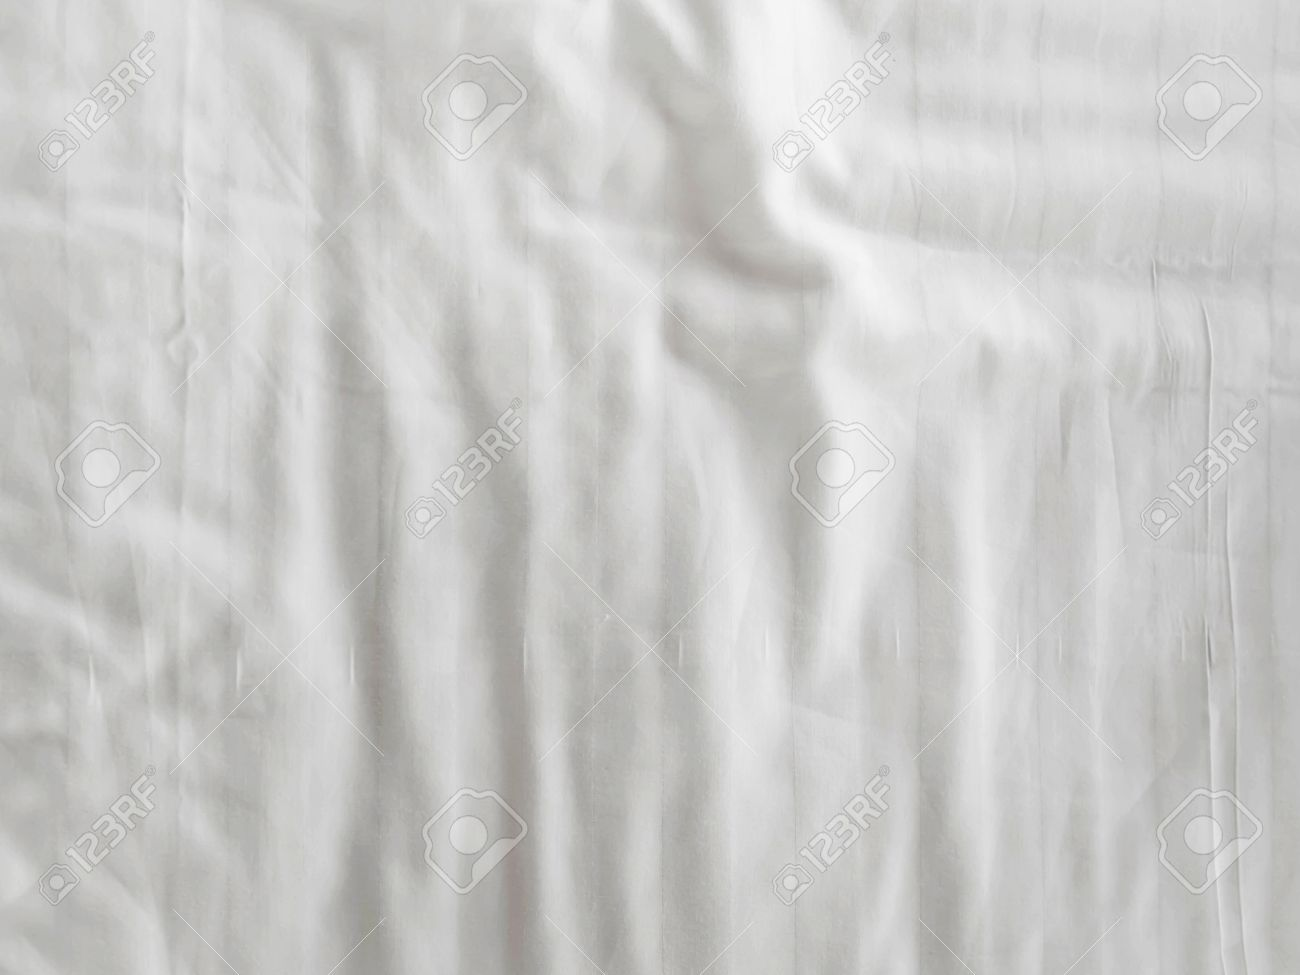 white bed sheet texture. Stock Photo - White Fabric Bedsheet Texture Background Bed Sheet